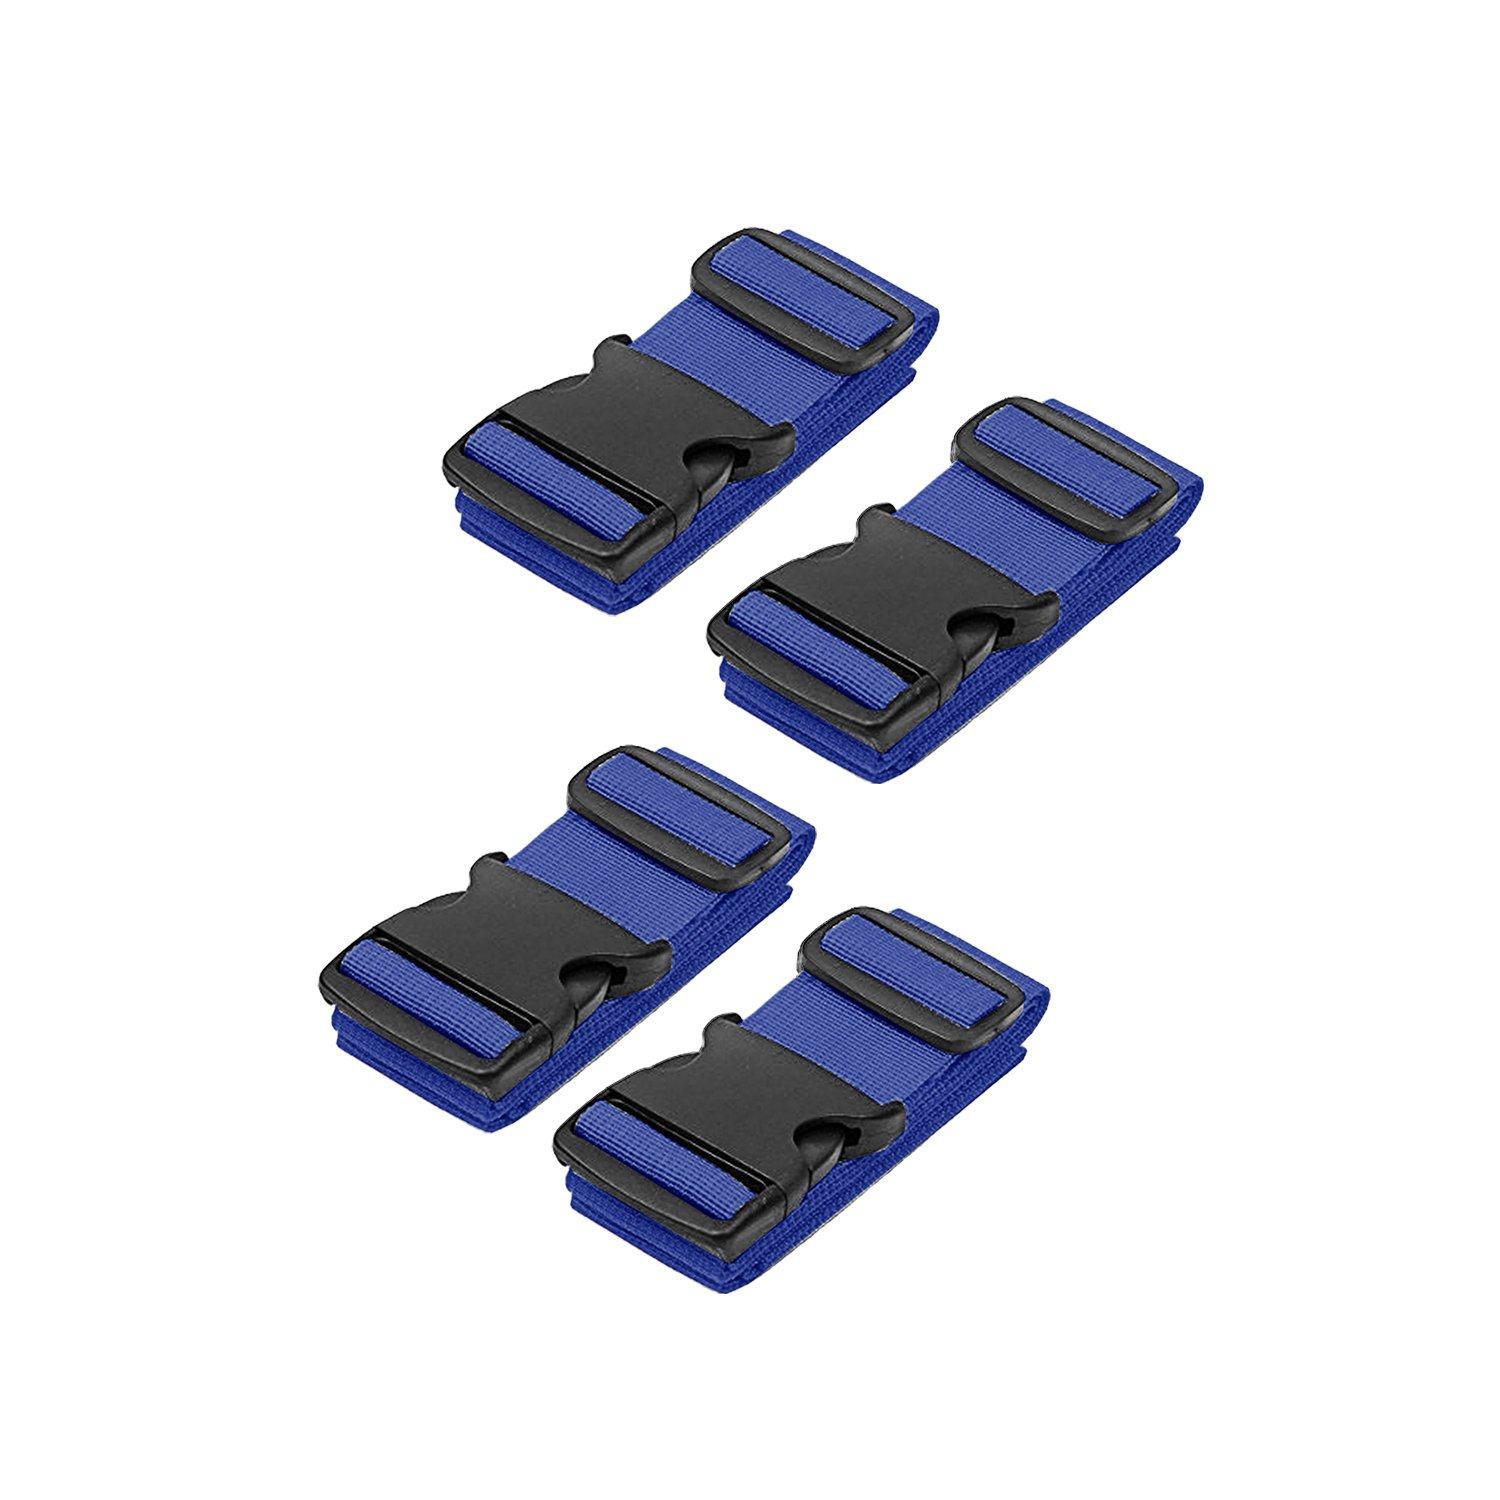 Luggage Straps - Travel Accessories TSA Approved Luggage Straps Suitcase Belts In 6 Colors Sold In 1/2/4 set By SWISSELITE